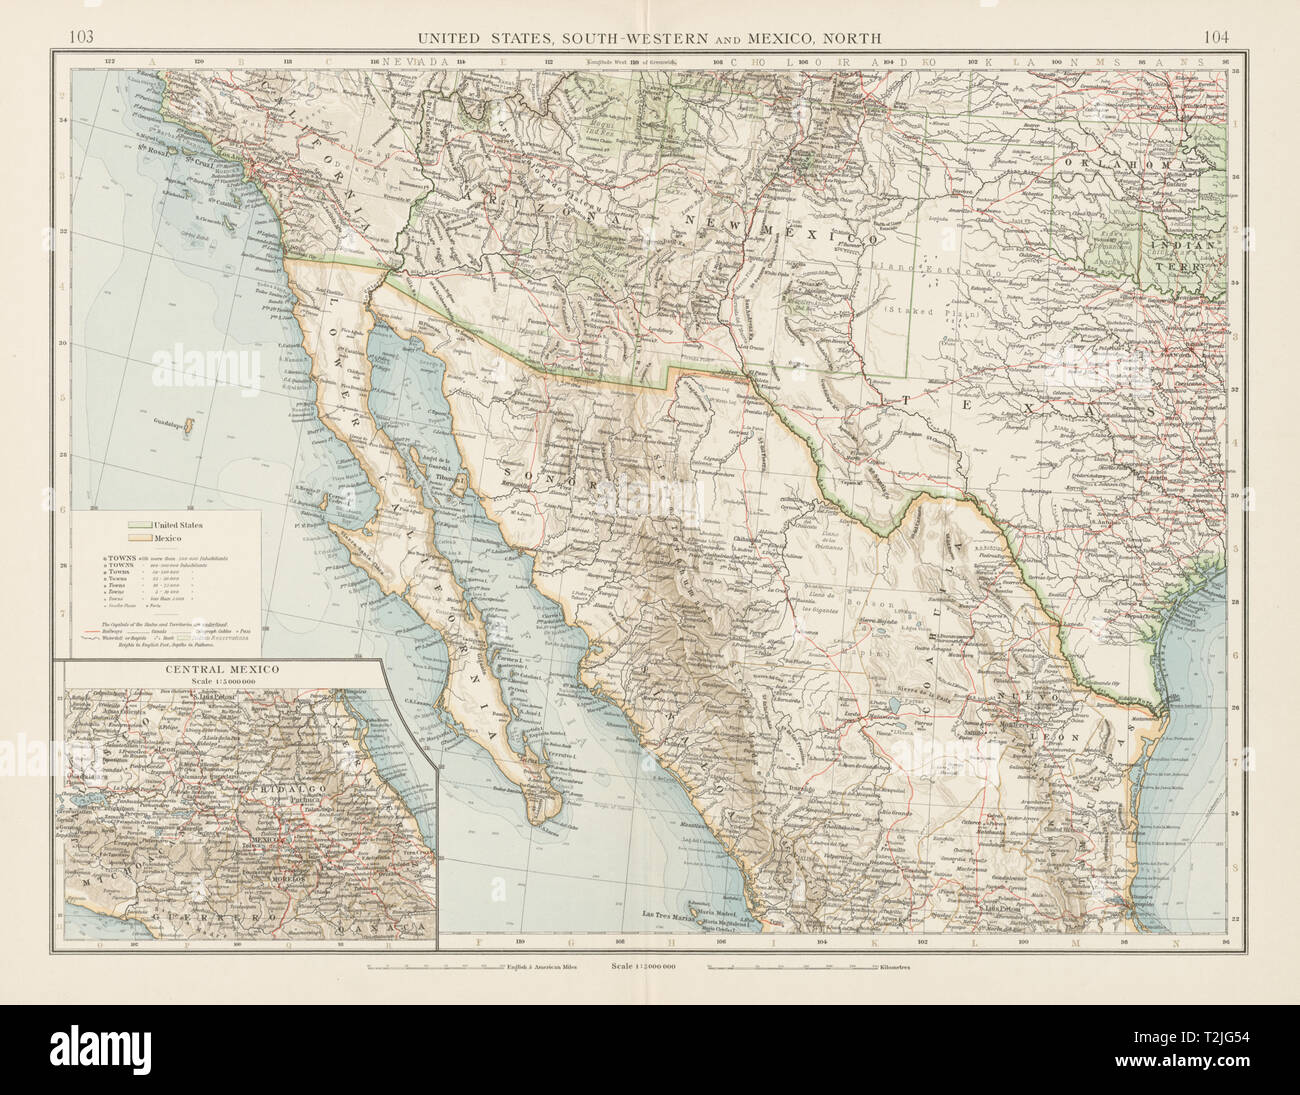 South Western United States Map Stockfotos & South Western ...